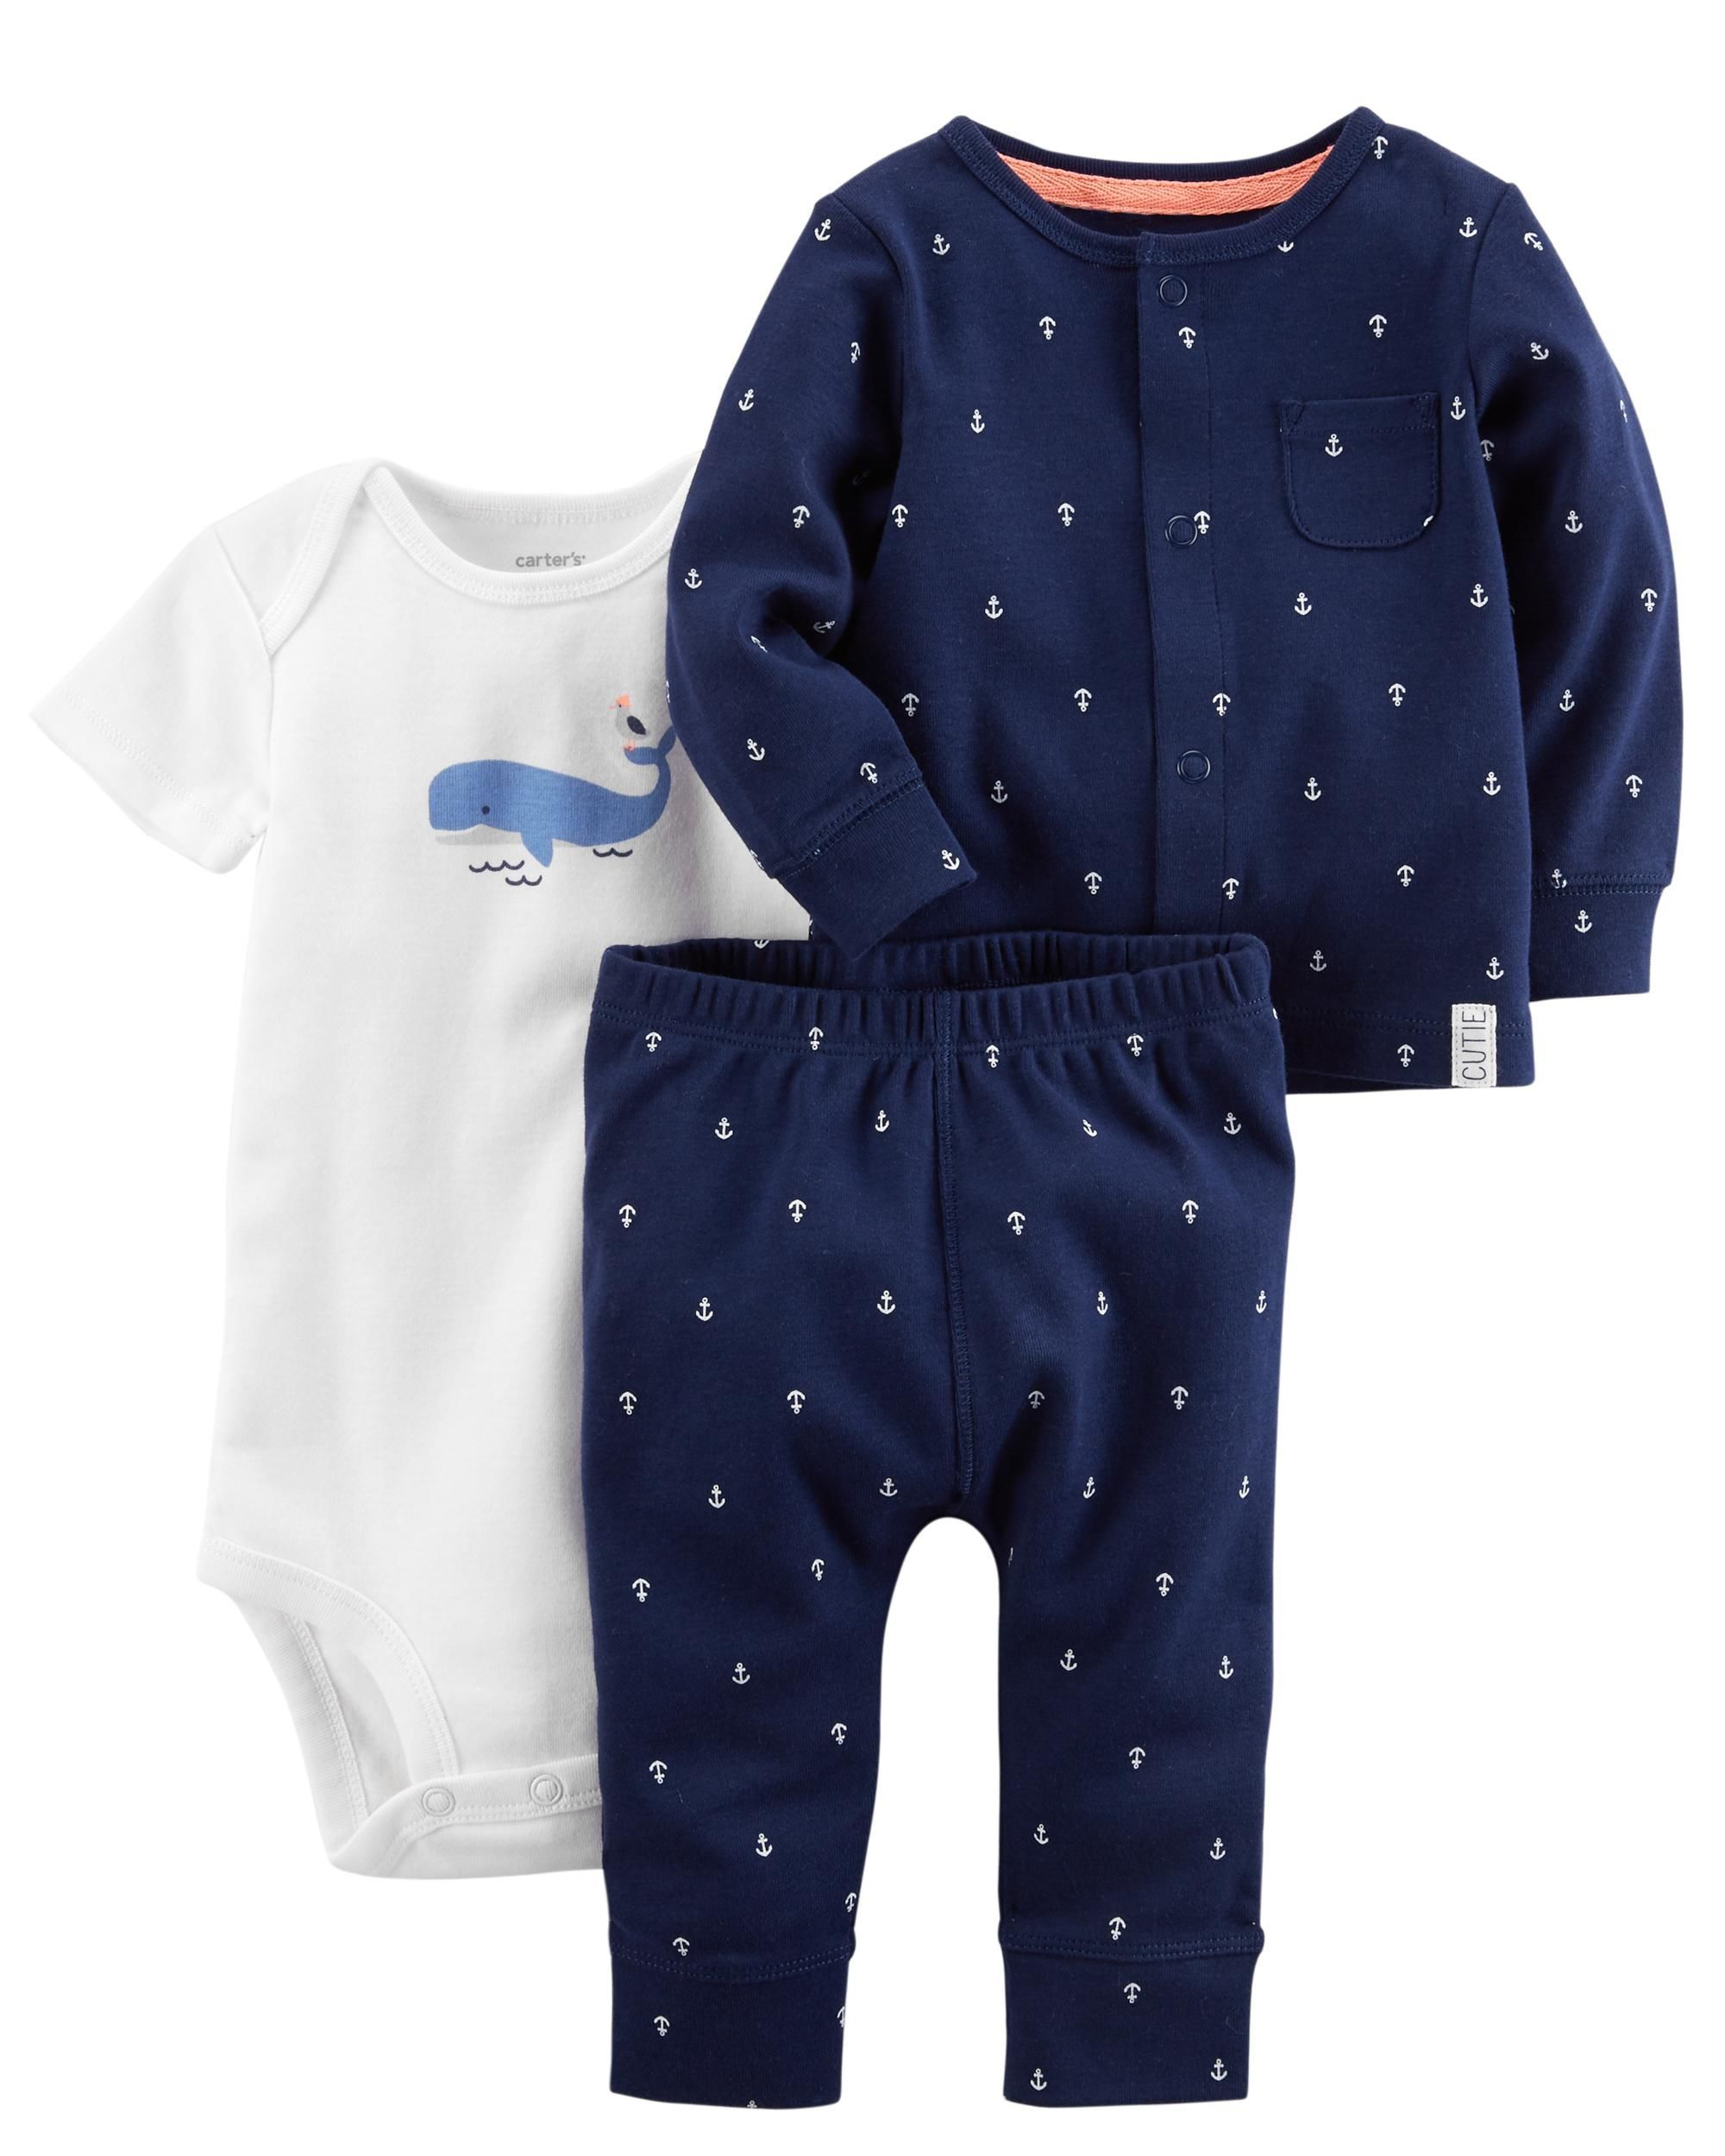 5T, Navy All Sports Carters Baby Boys Cotton Zip-Up Sleep N Play